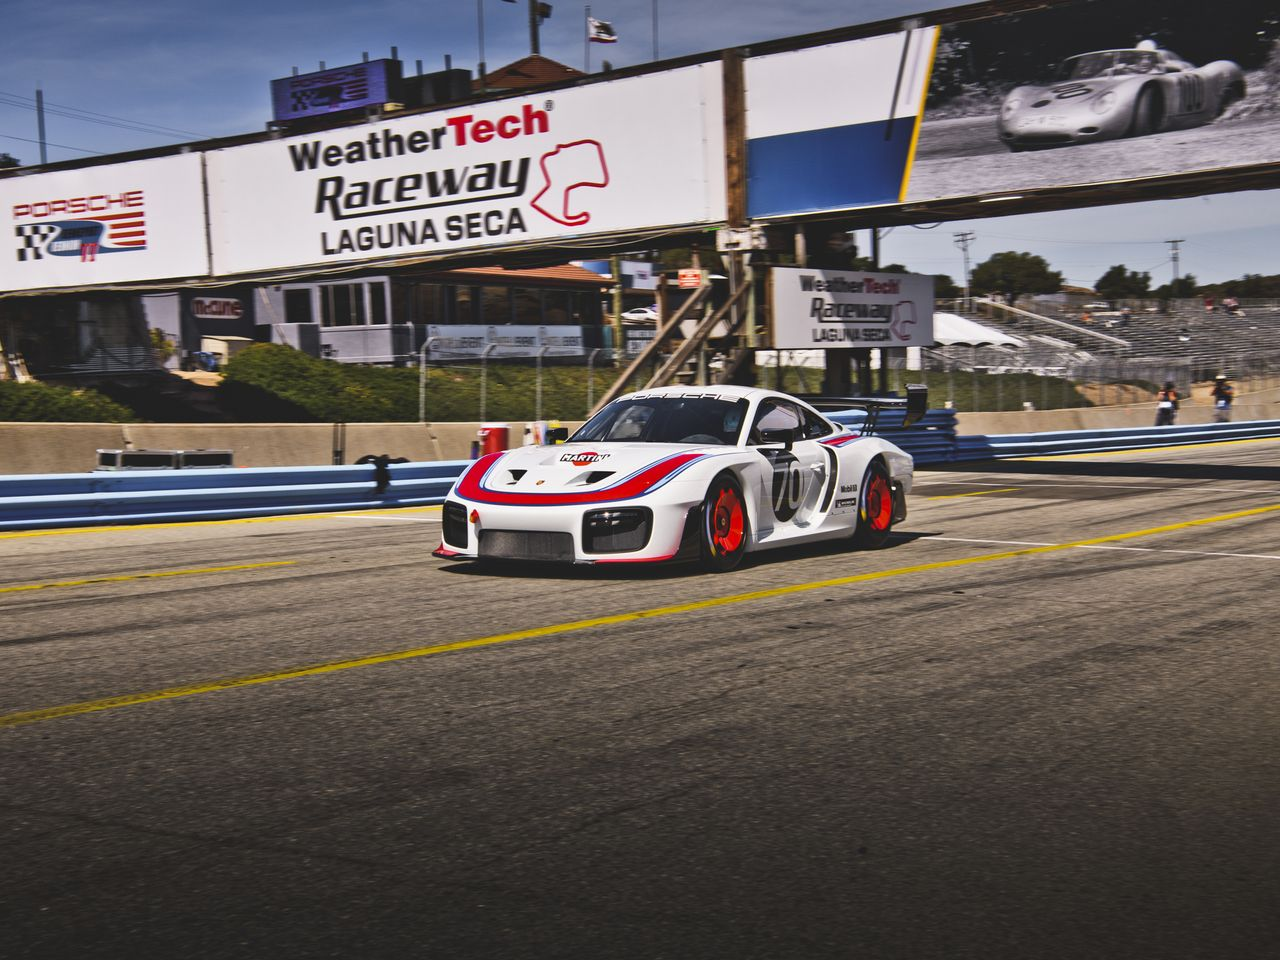 The new Porsche 935 takes the renowned Corkscrew at Laguna Seca Raceway in Monterey, California, with aplomb. With just seventy-seven units built, Porsche aims to ignite the racing world with the new car.